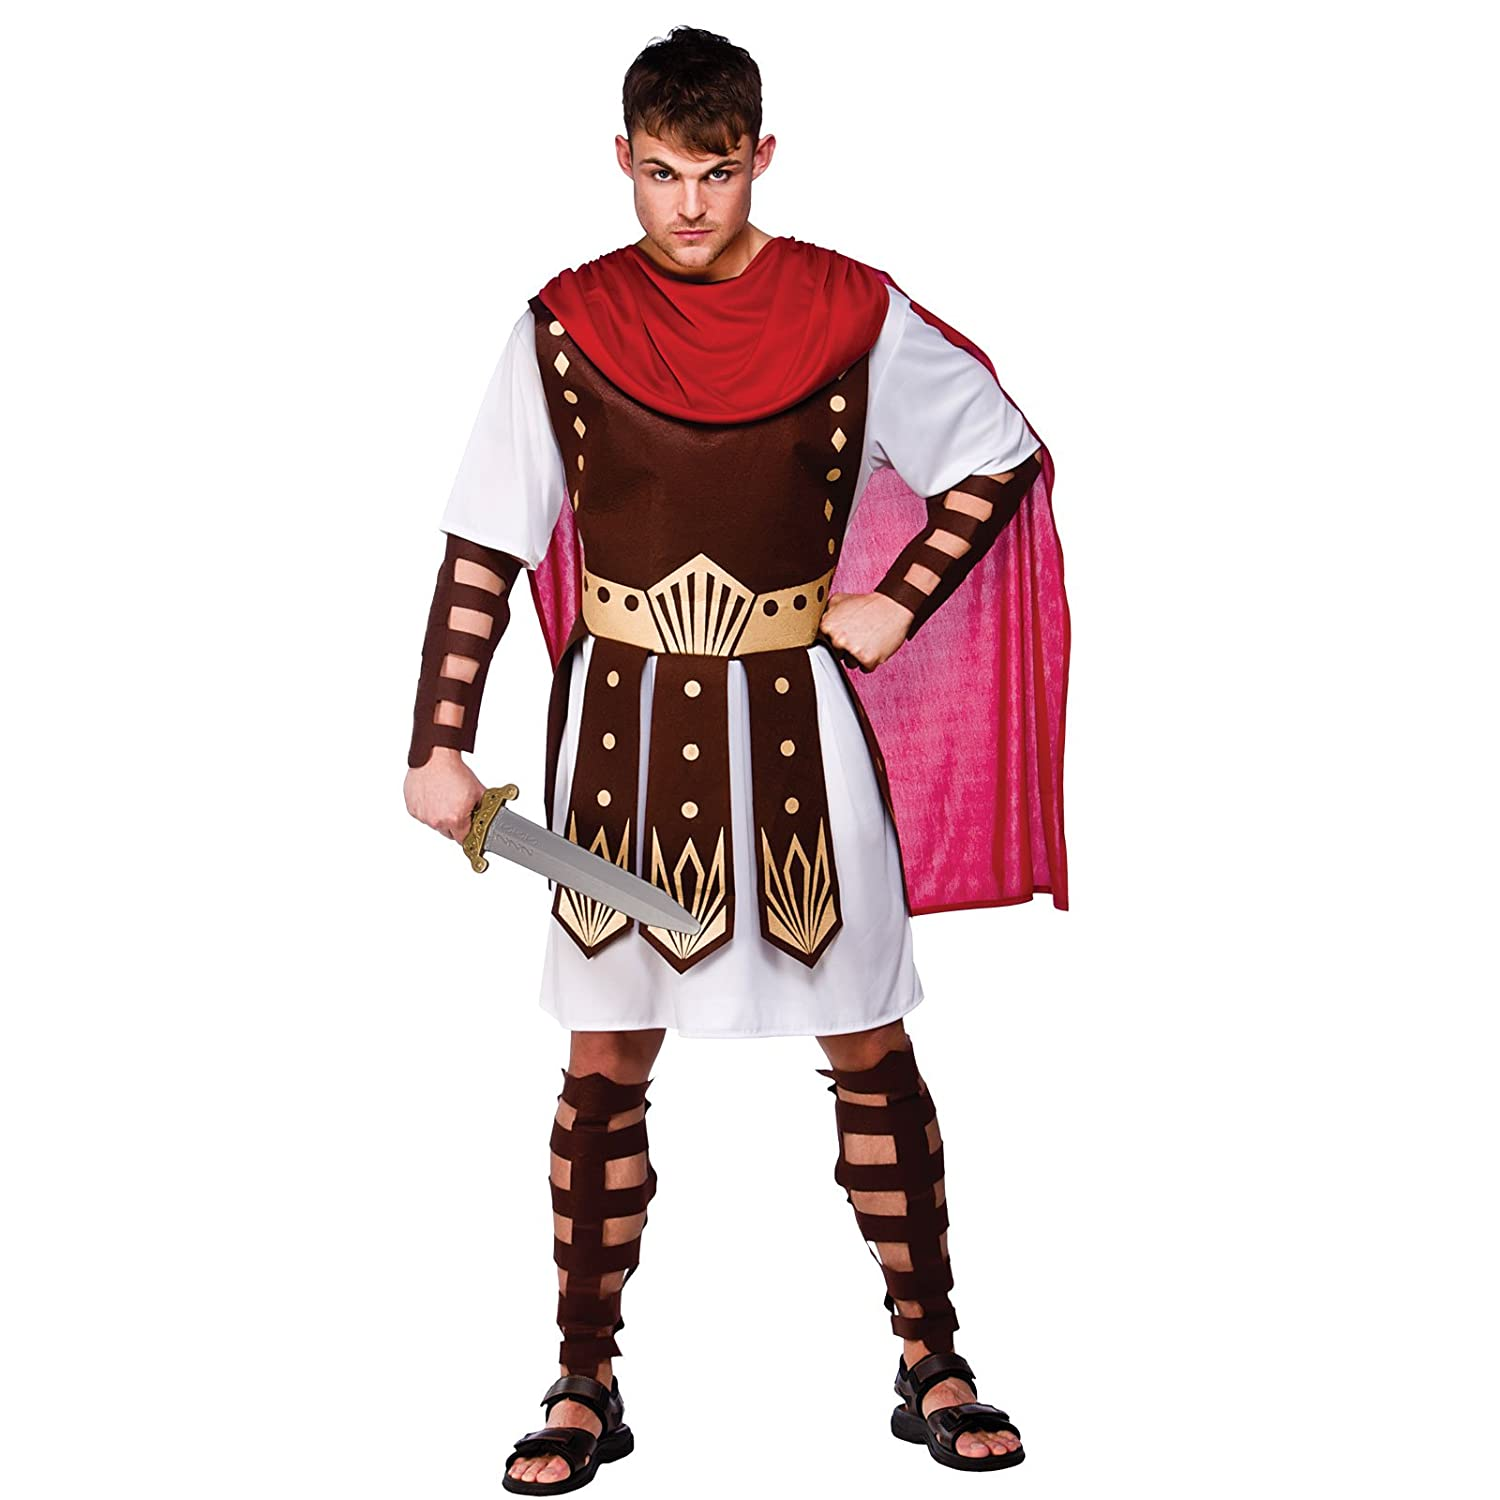 Mens Roman Medieval Centurion Soldier Gladiator Halloween Fancy Dress Costume Amazon.co.uk Toys u0026 Games  sc 1 st  Amazon UK & Mens Roman Medieval Centurion Soldier Gladiator Halloween Fancy ...